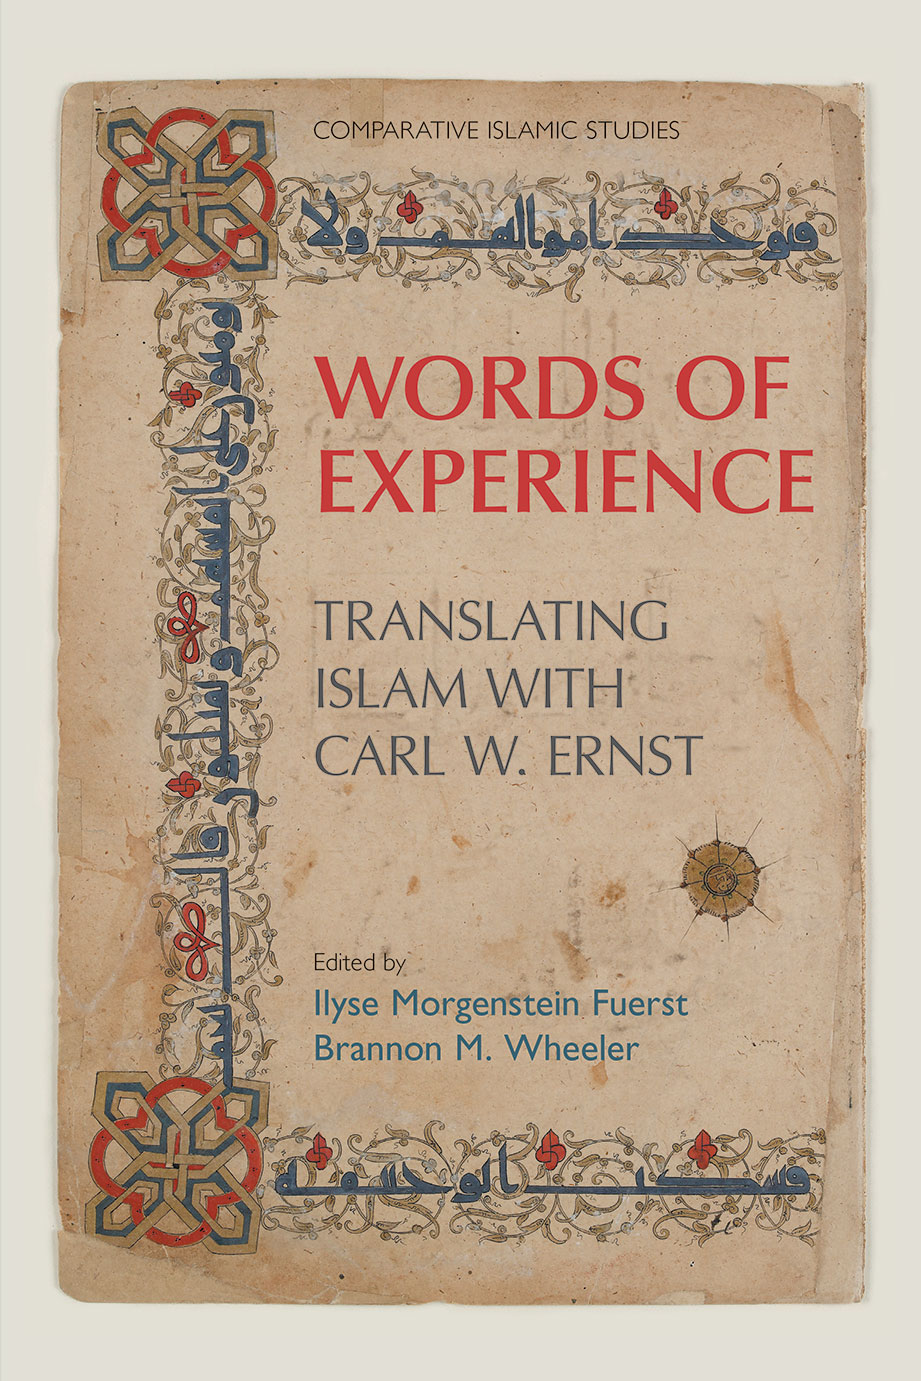 Words of Experience - Translating Islam with Carl W. Ernst - Ilyse Morgenstein Fuerst